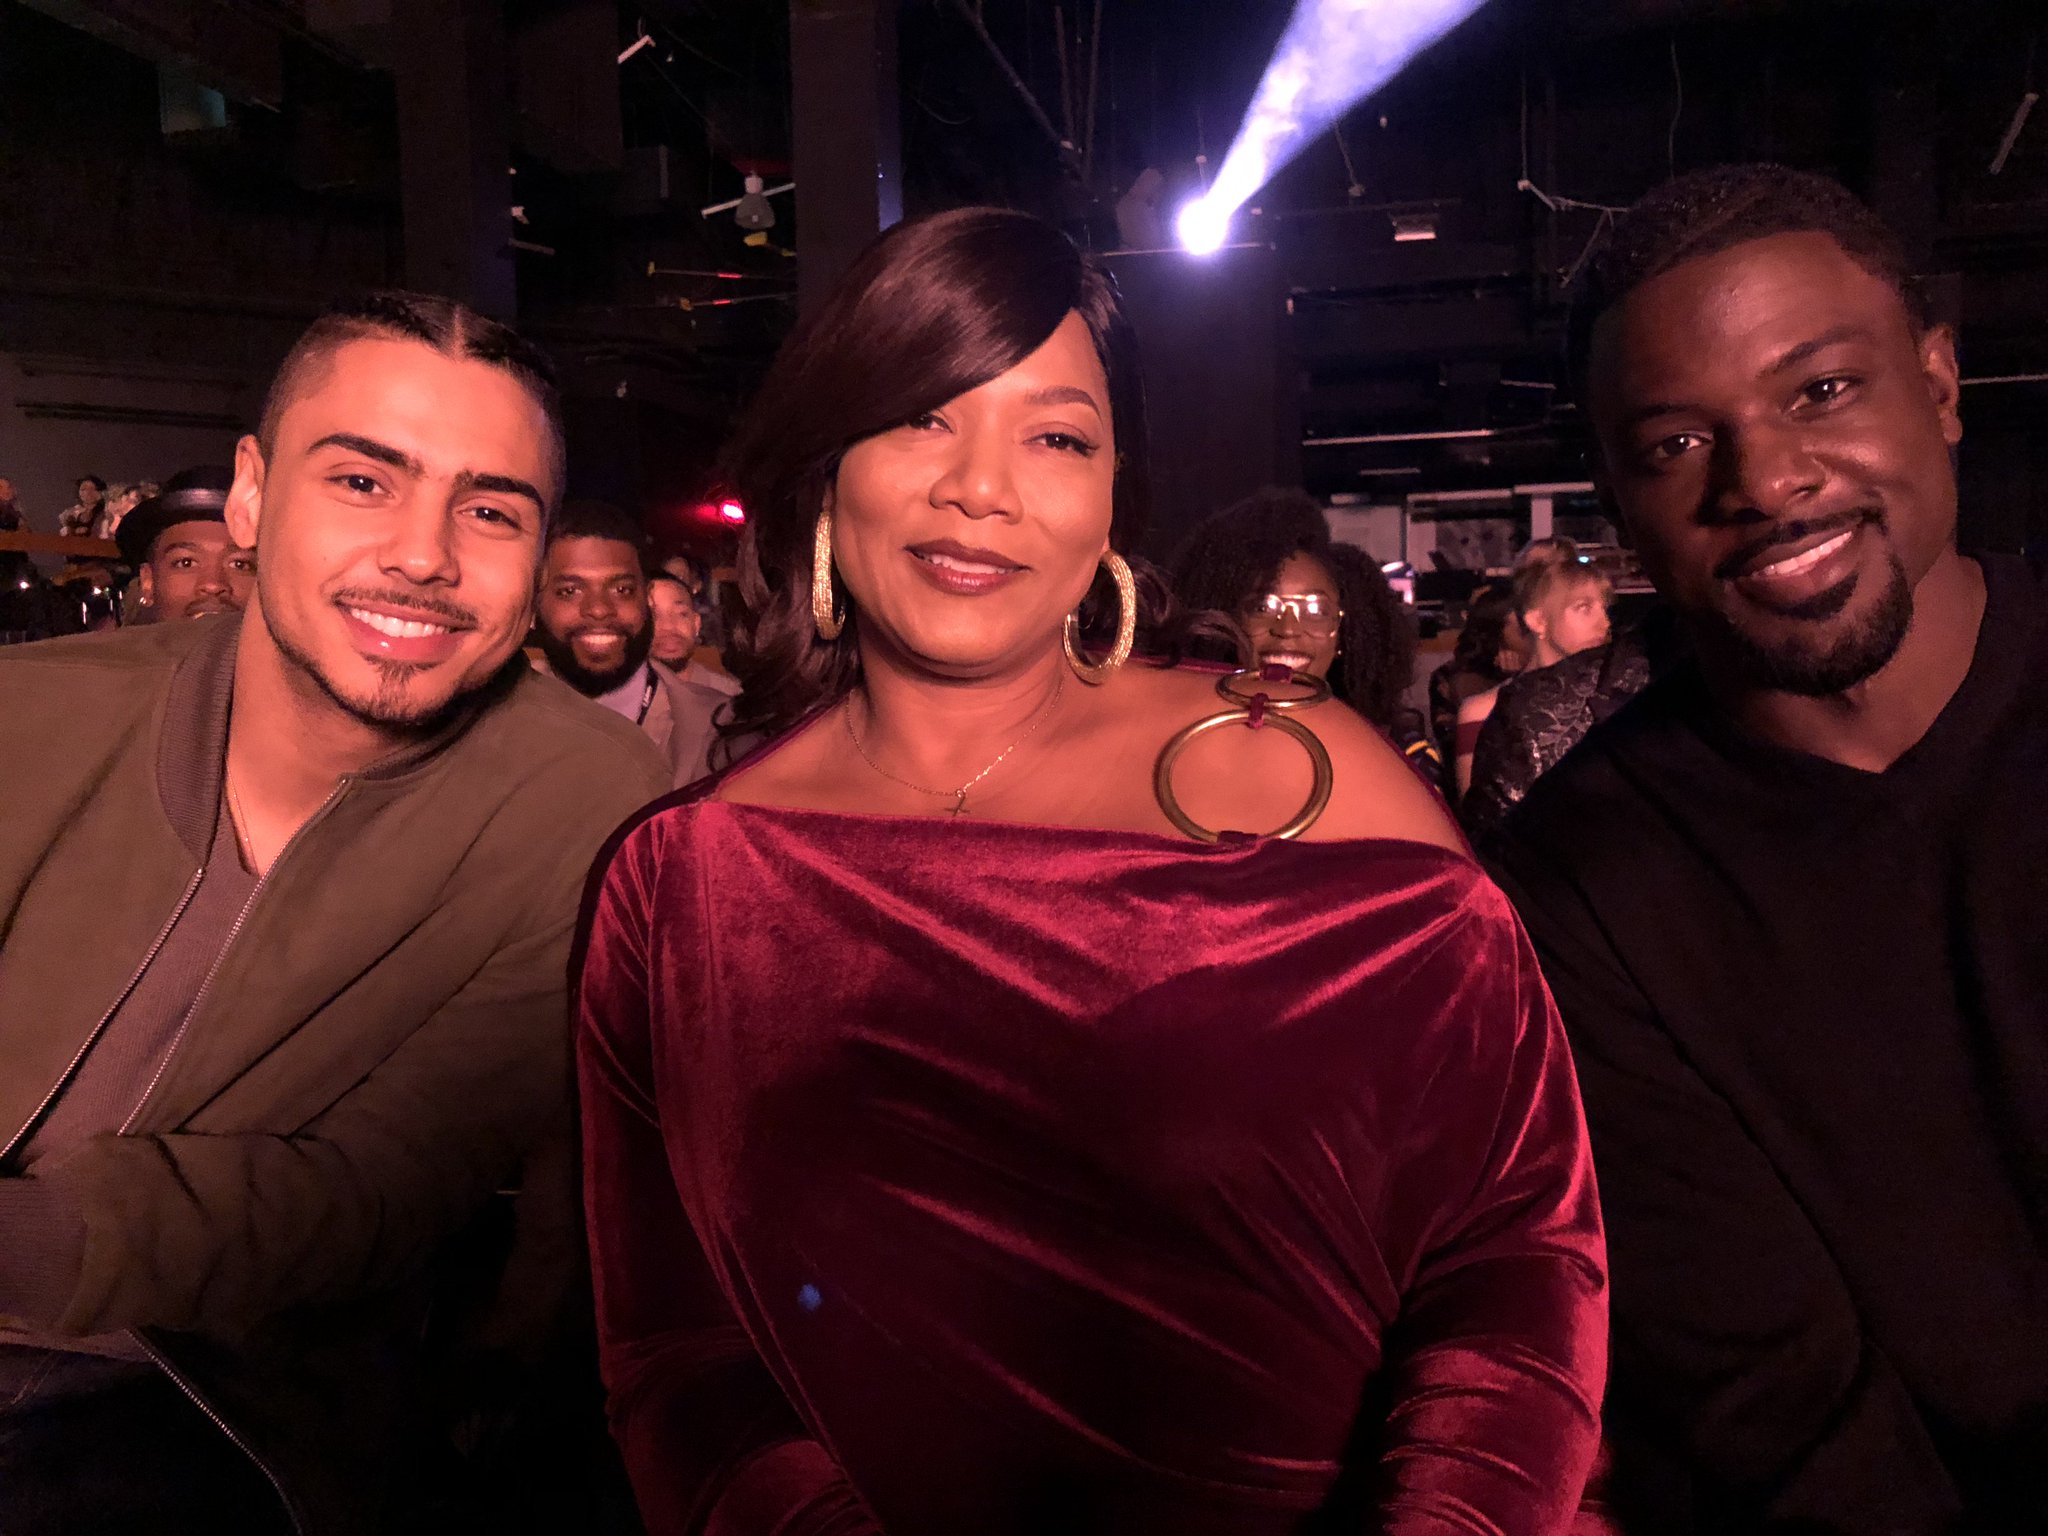 Yass! We're cheering for #Take3! 🙌🏾 #STAR https://t.co/8rBJ6EA9UE